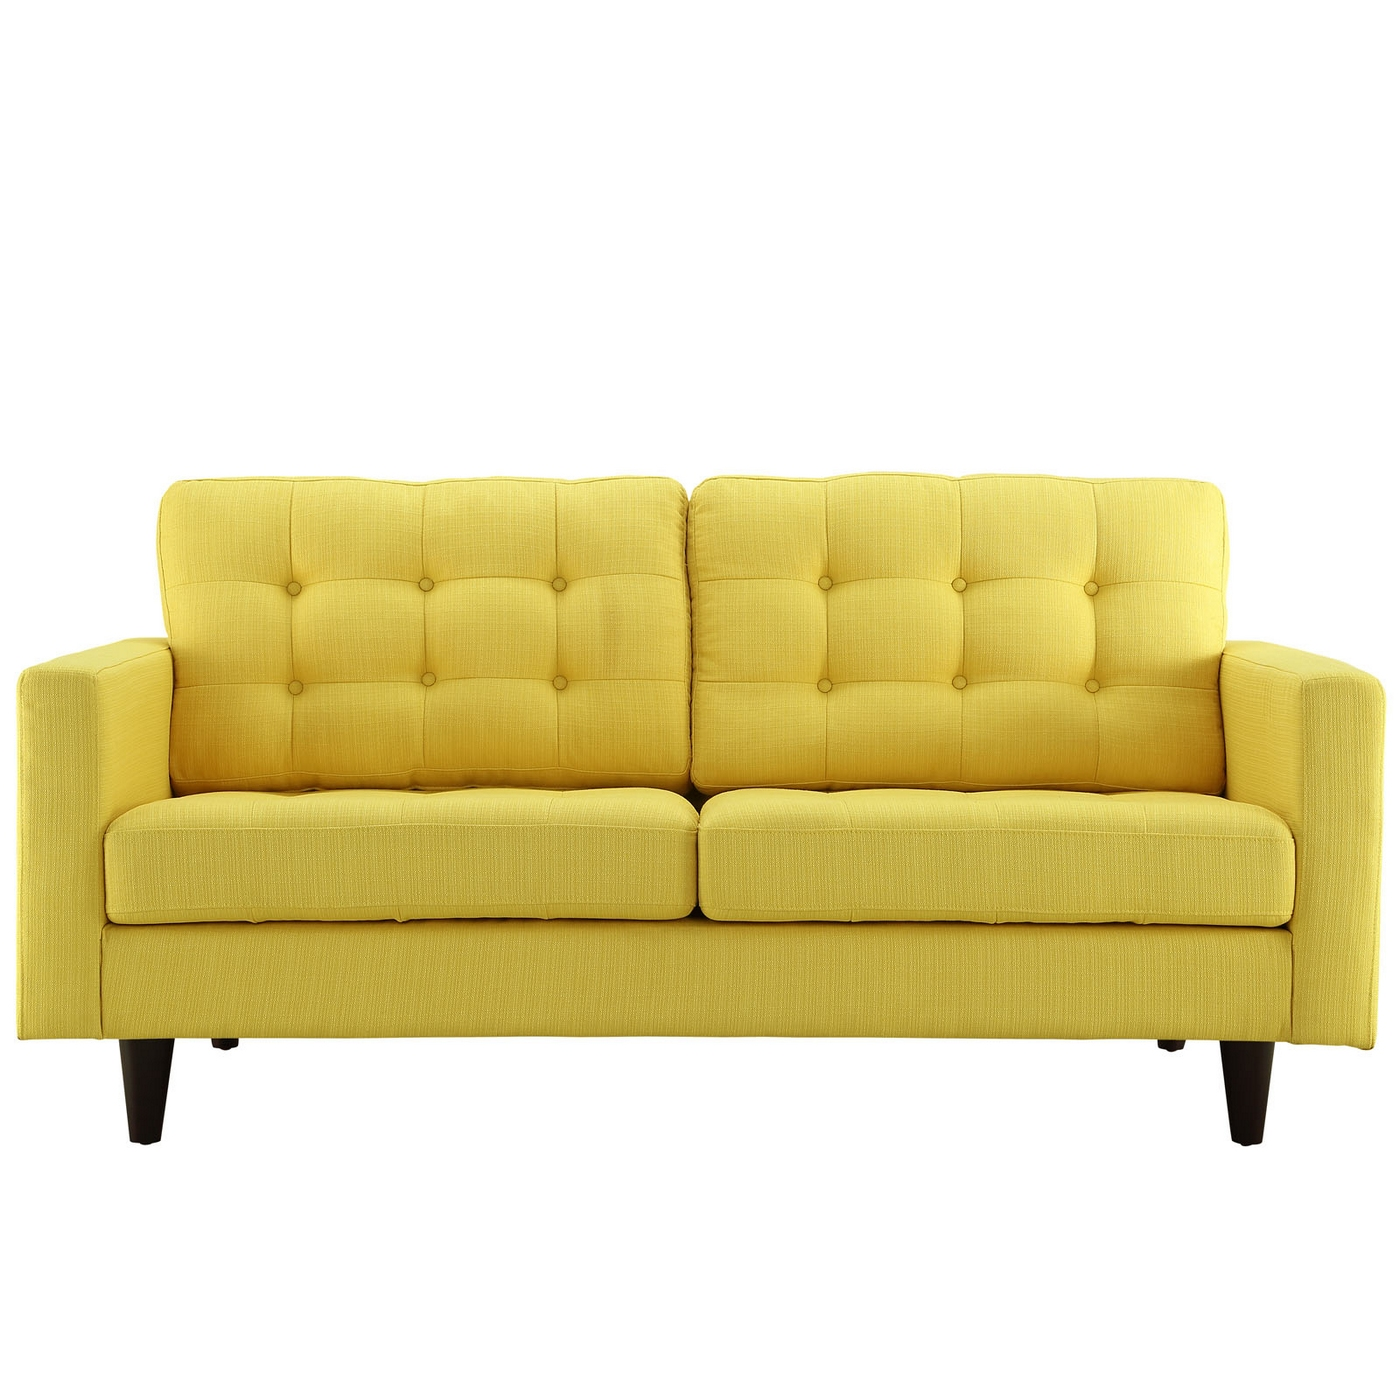 Empress Button Tufted Upholstered Loveseat With Wood Legs Sunny